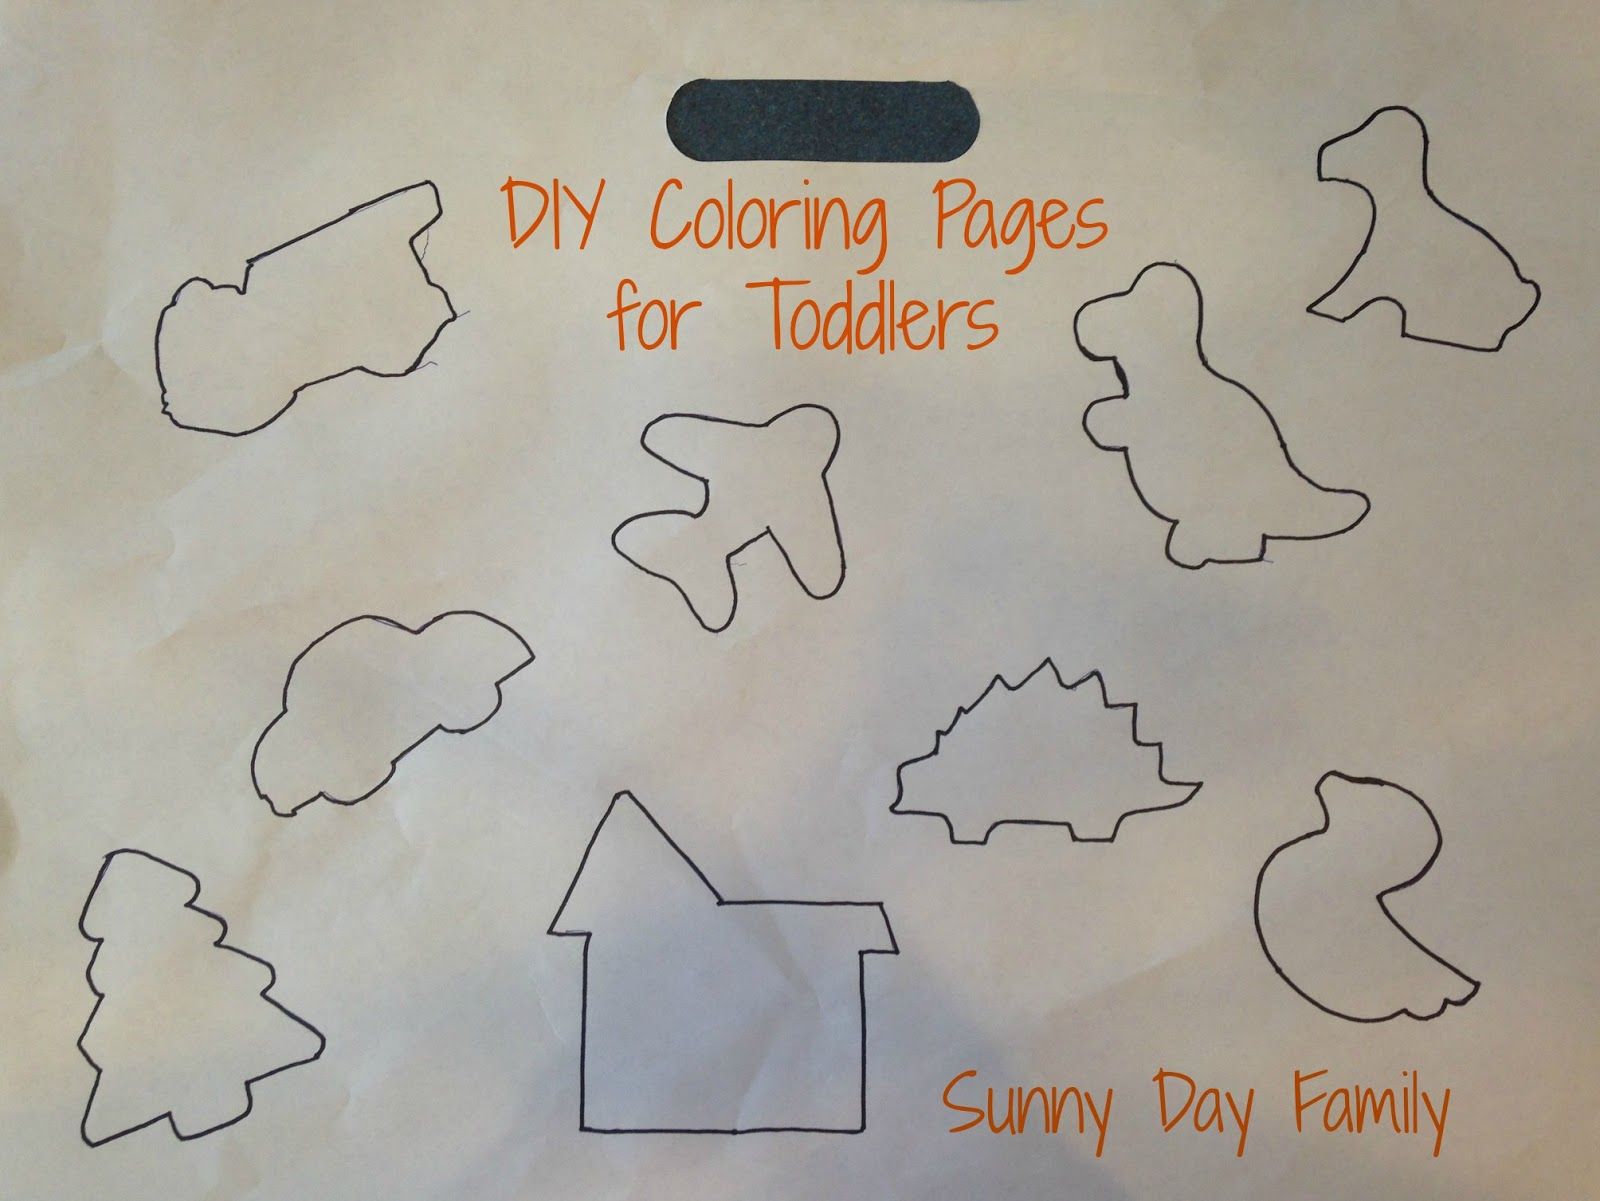 Easy DIY Coloring Pages for Toddlers